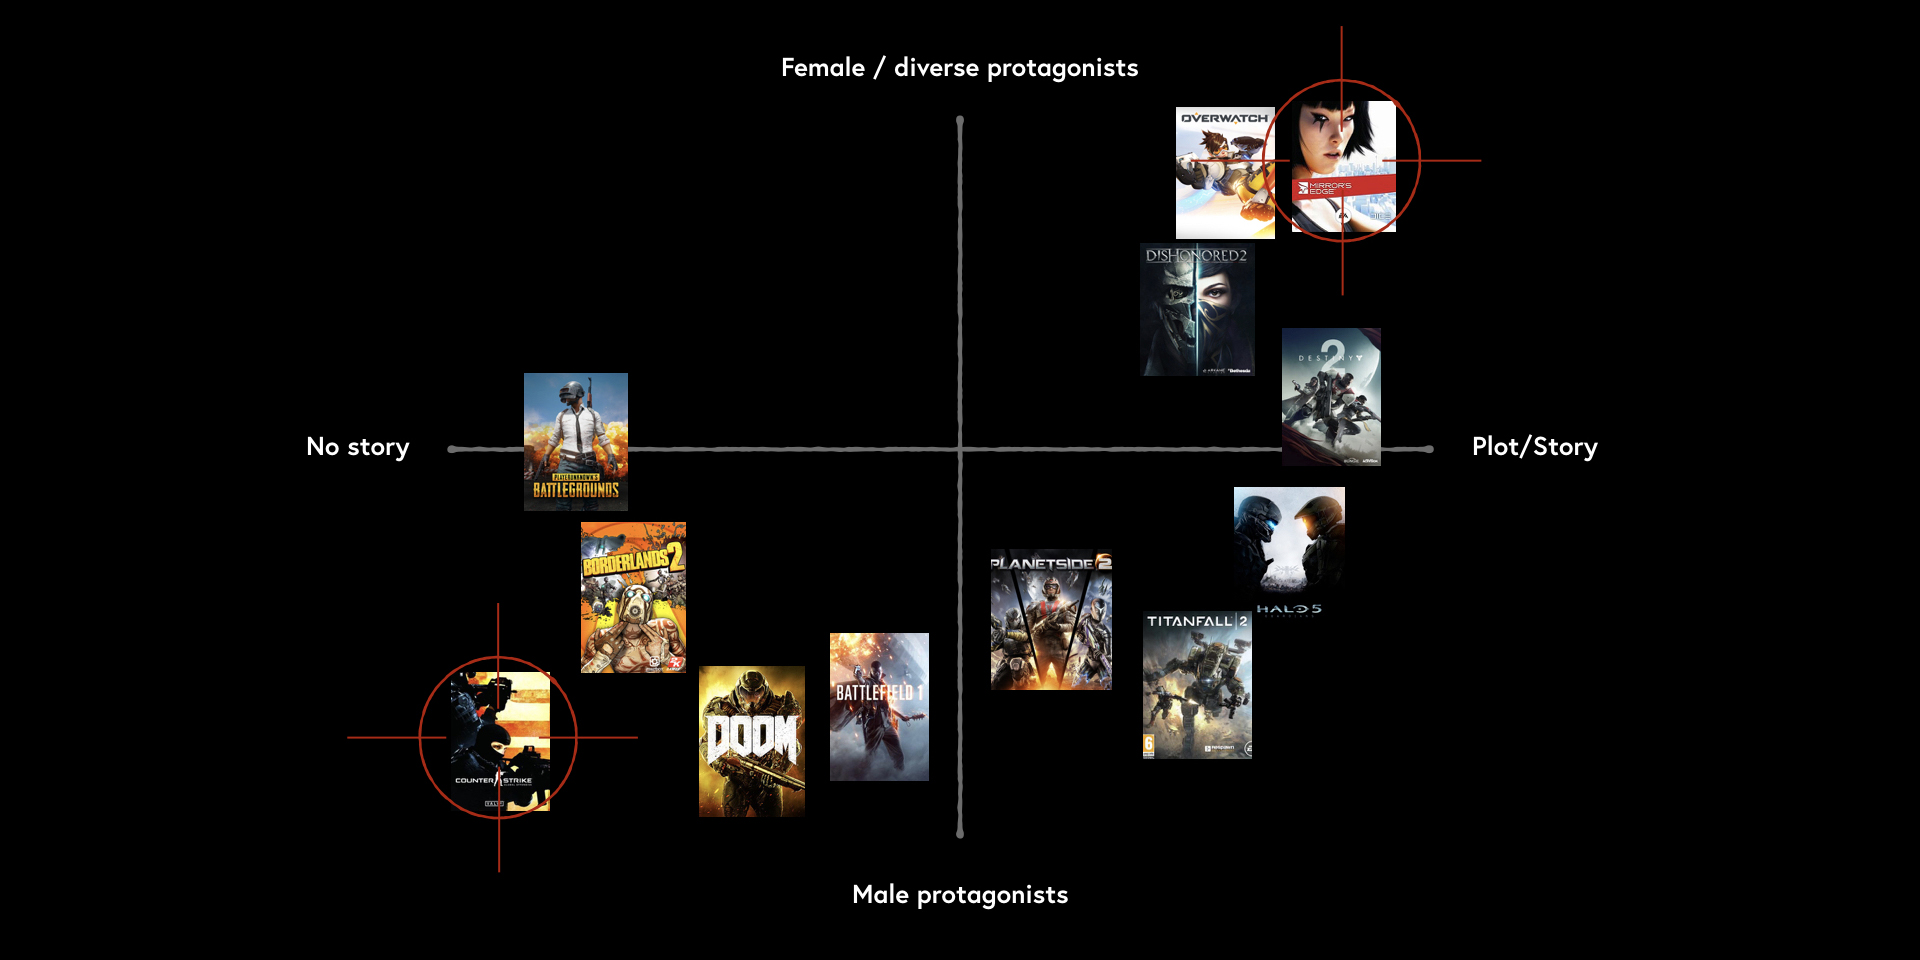 I compared some popular FPS games in a positioning map, based on if there was a story or not and if you have the chance of choosing female/non binary characters as protagonists or if there are only male characters. (OBS. This is how I perceive these games and their content.)